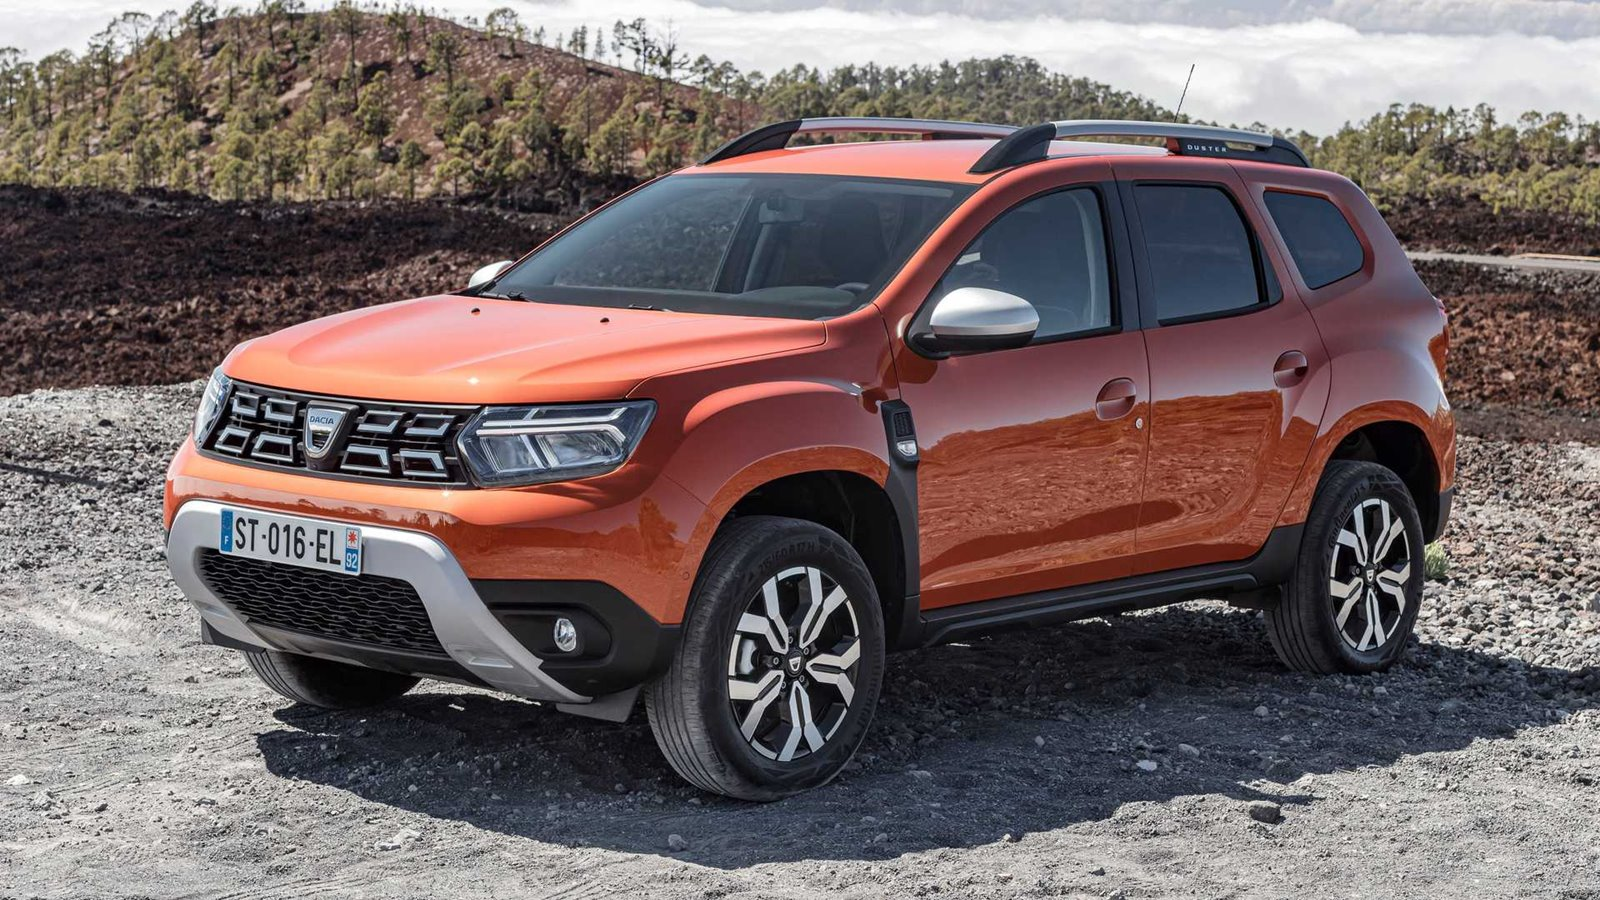 restyling del Dacia Duster